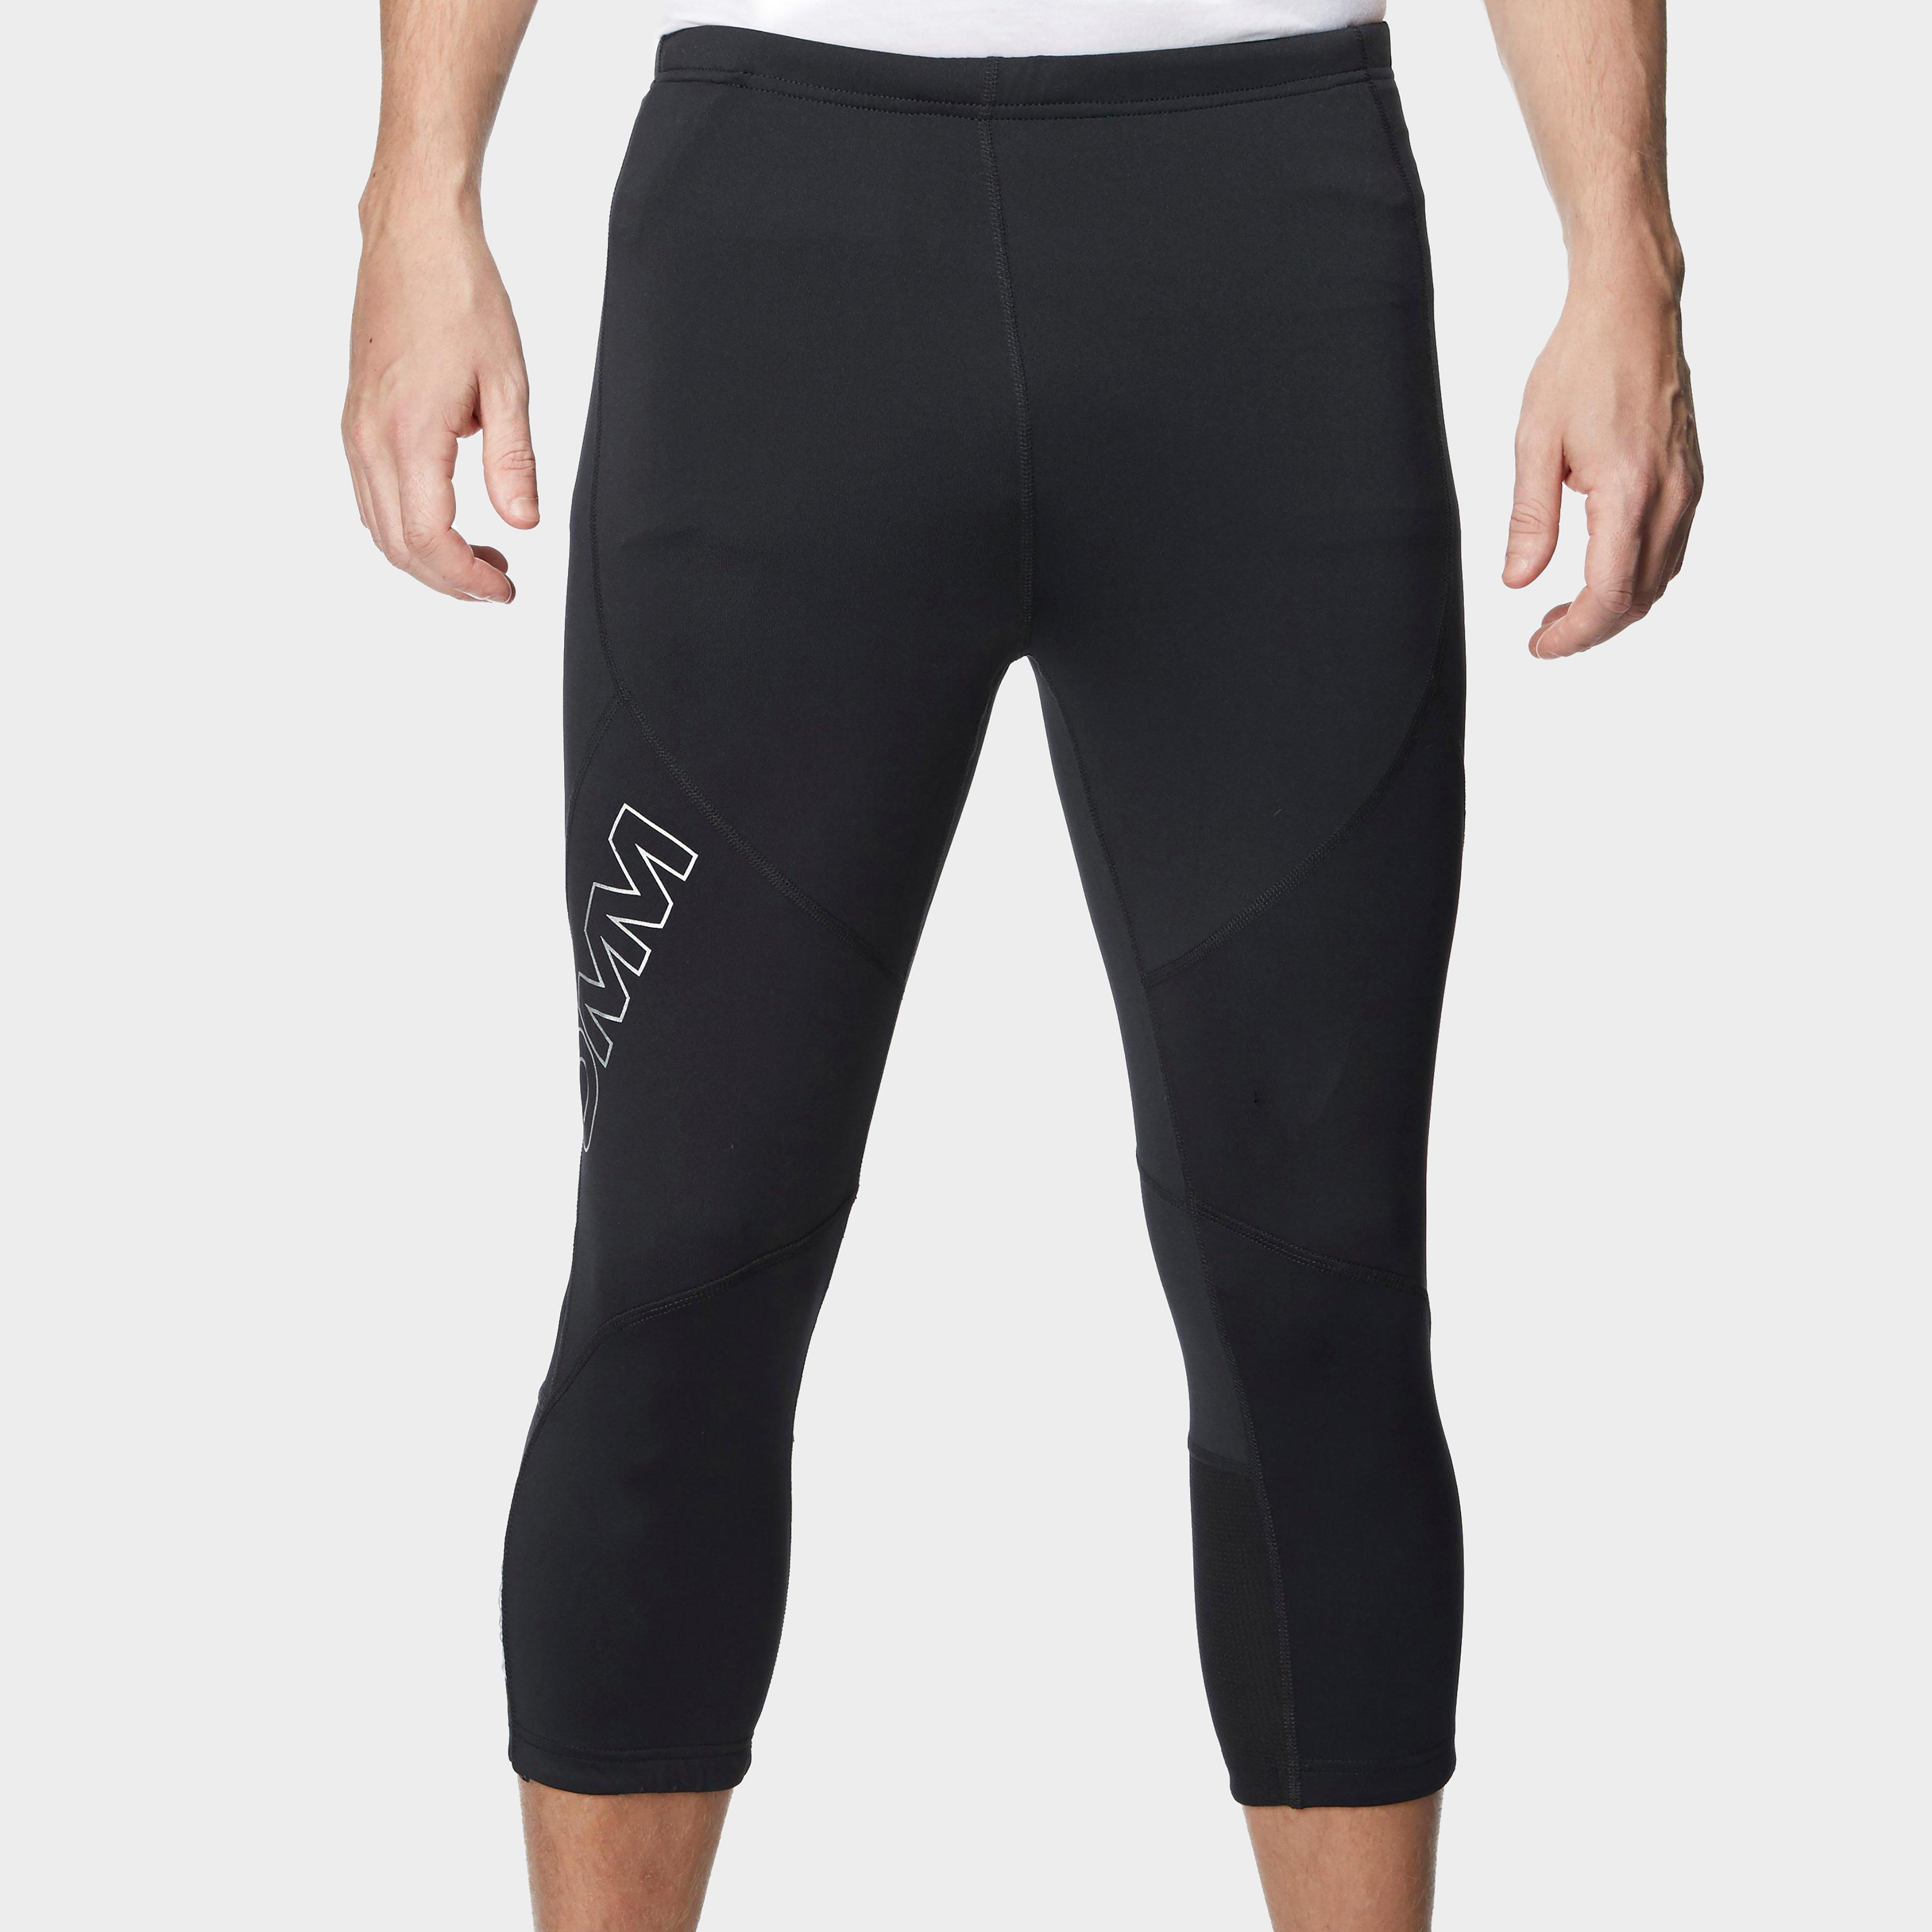 New Womens Black Nike Tech Capri Knee Length Running Tights Size 8 XS. Brand New. $ From United Kingdom. or Best Offer +$ shipping. Womens Yoga Shorts Running Shorts Knee Length Tights Gym Hot Shorts Half Pants. Brand New. $ From China. Buy It .